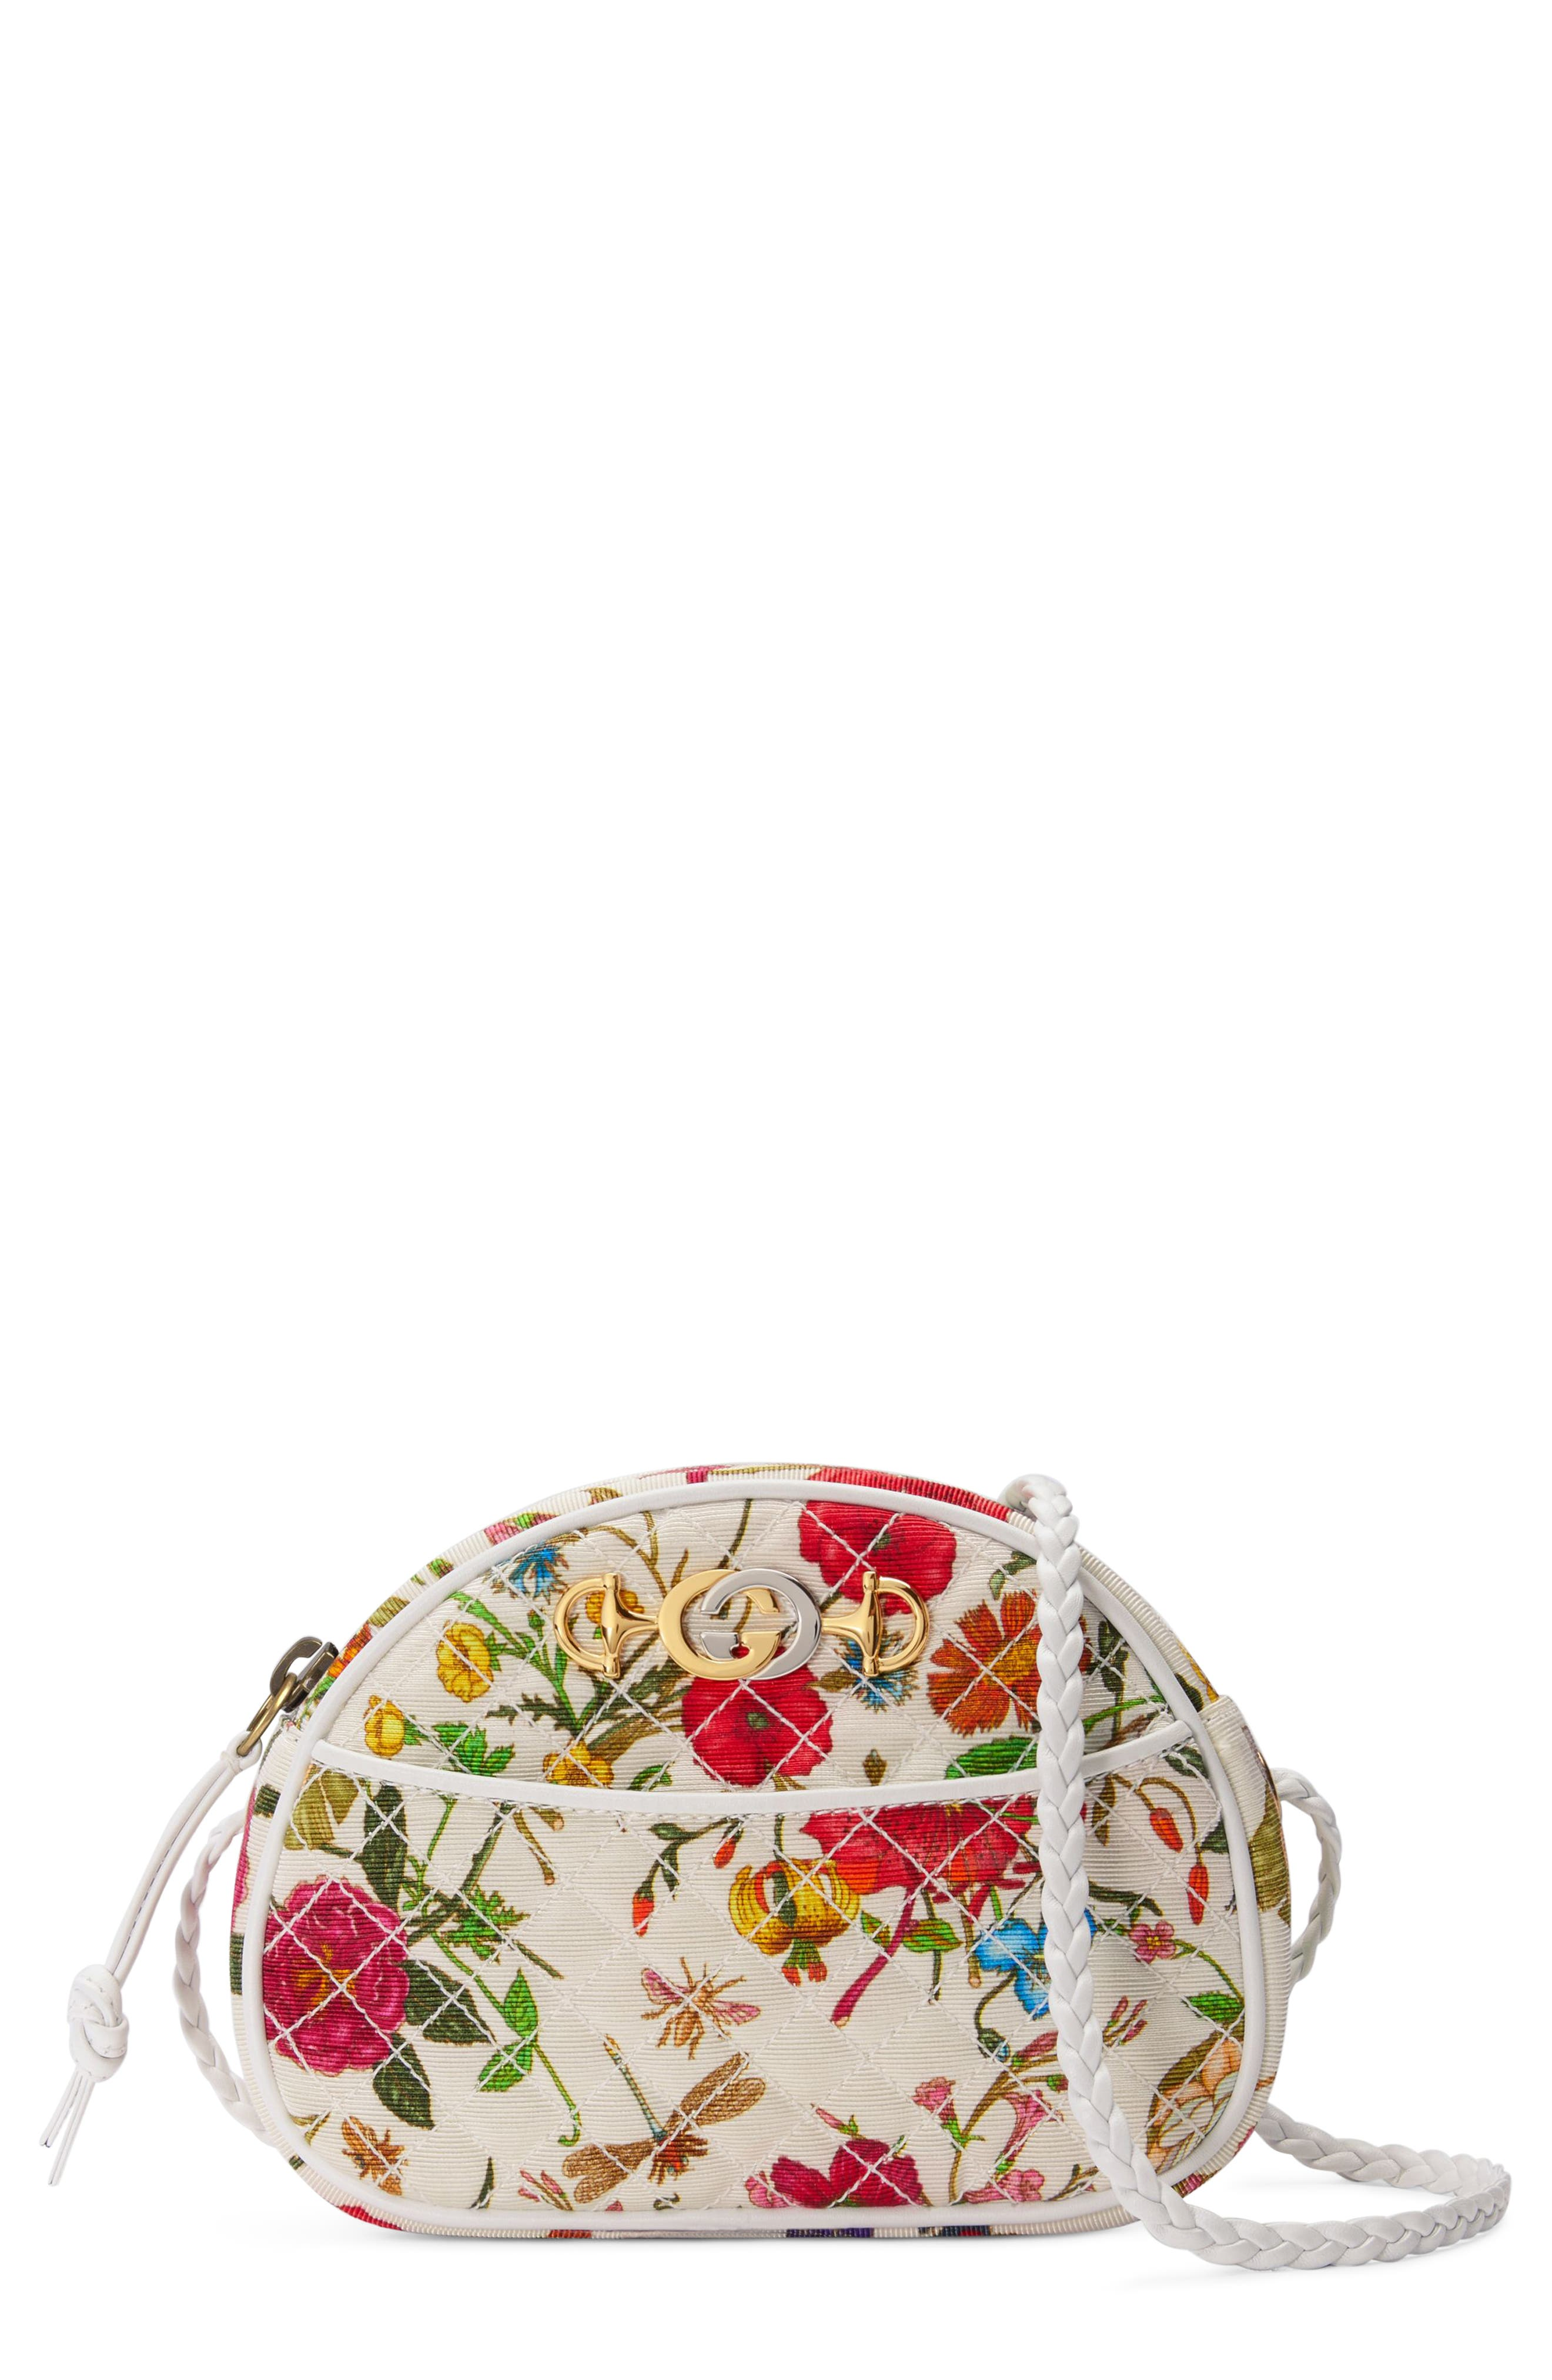 Quilted Floral Print Dome Crossbody Bag, Main, color, WHITE MULTI